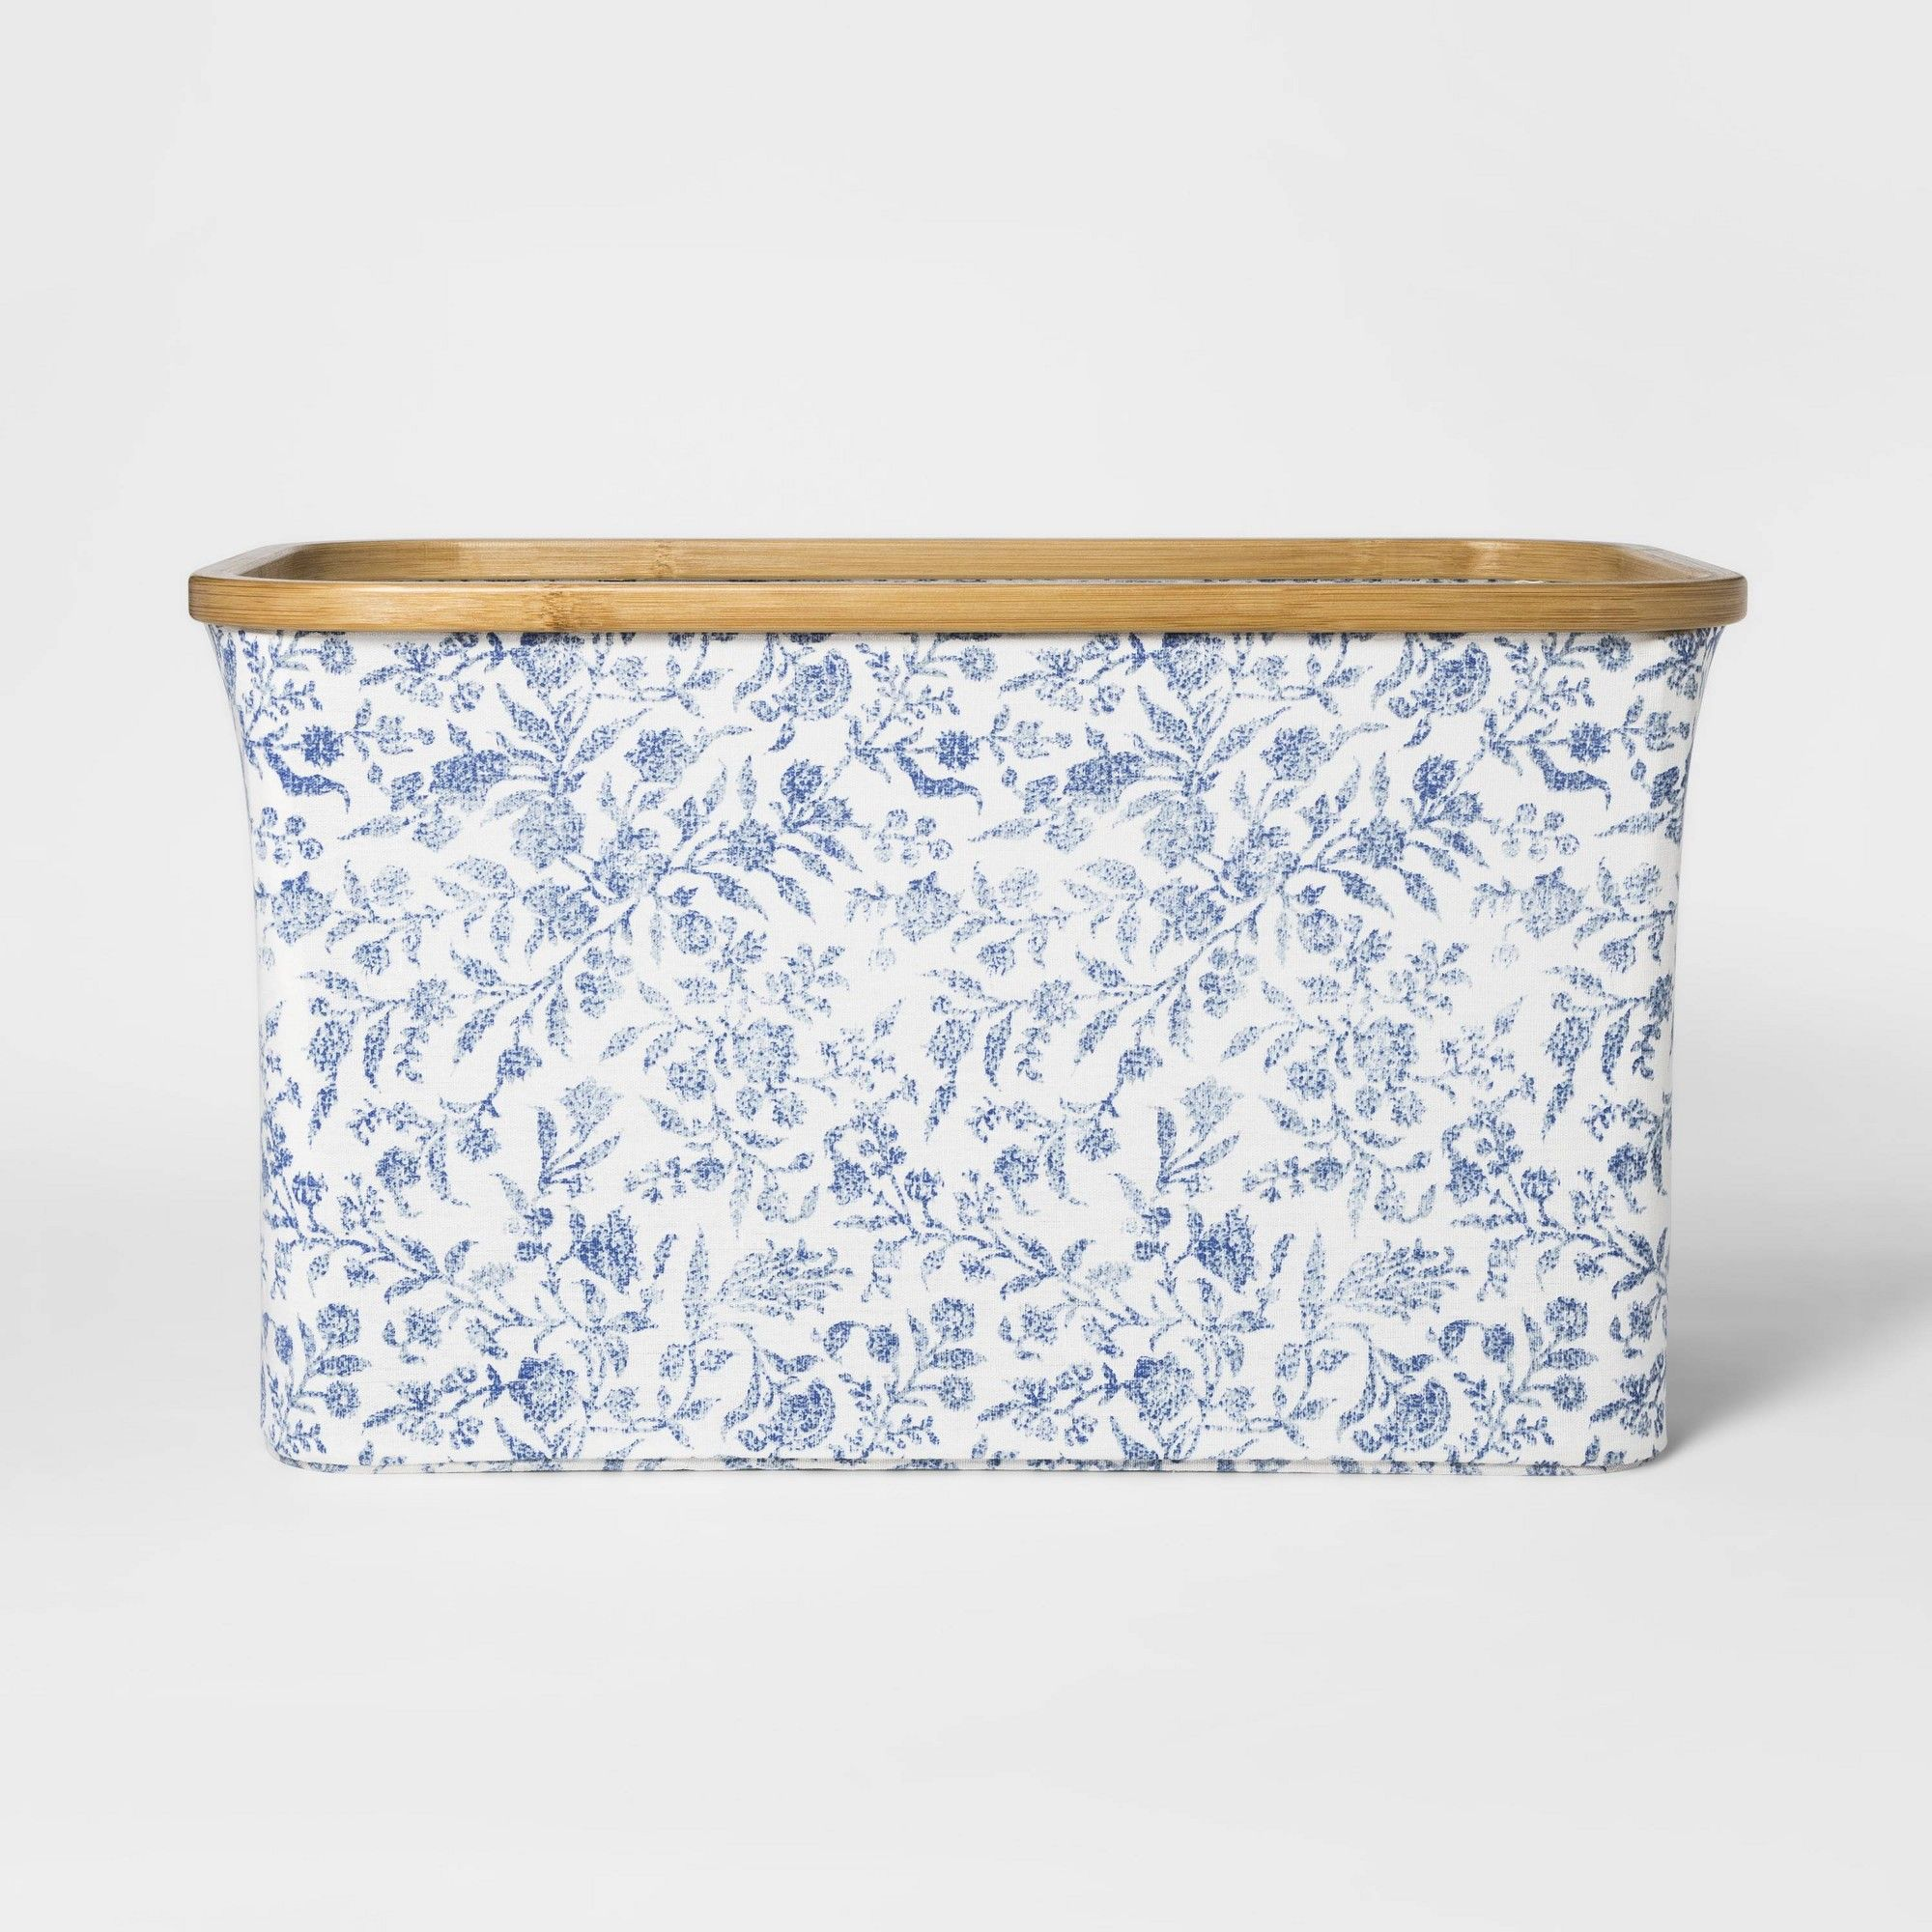 Soft Sided Laundry Basket With Bamboo Rim Floral Blue